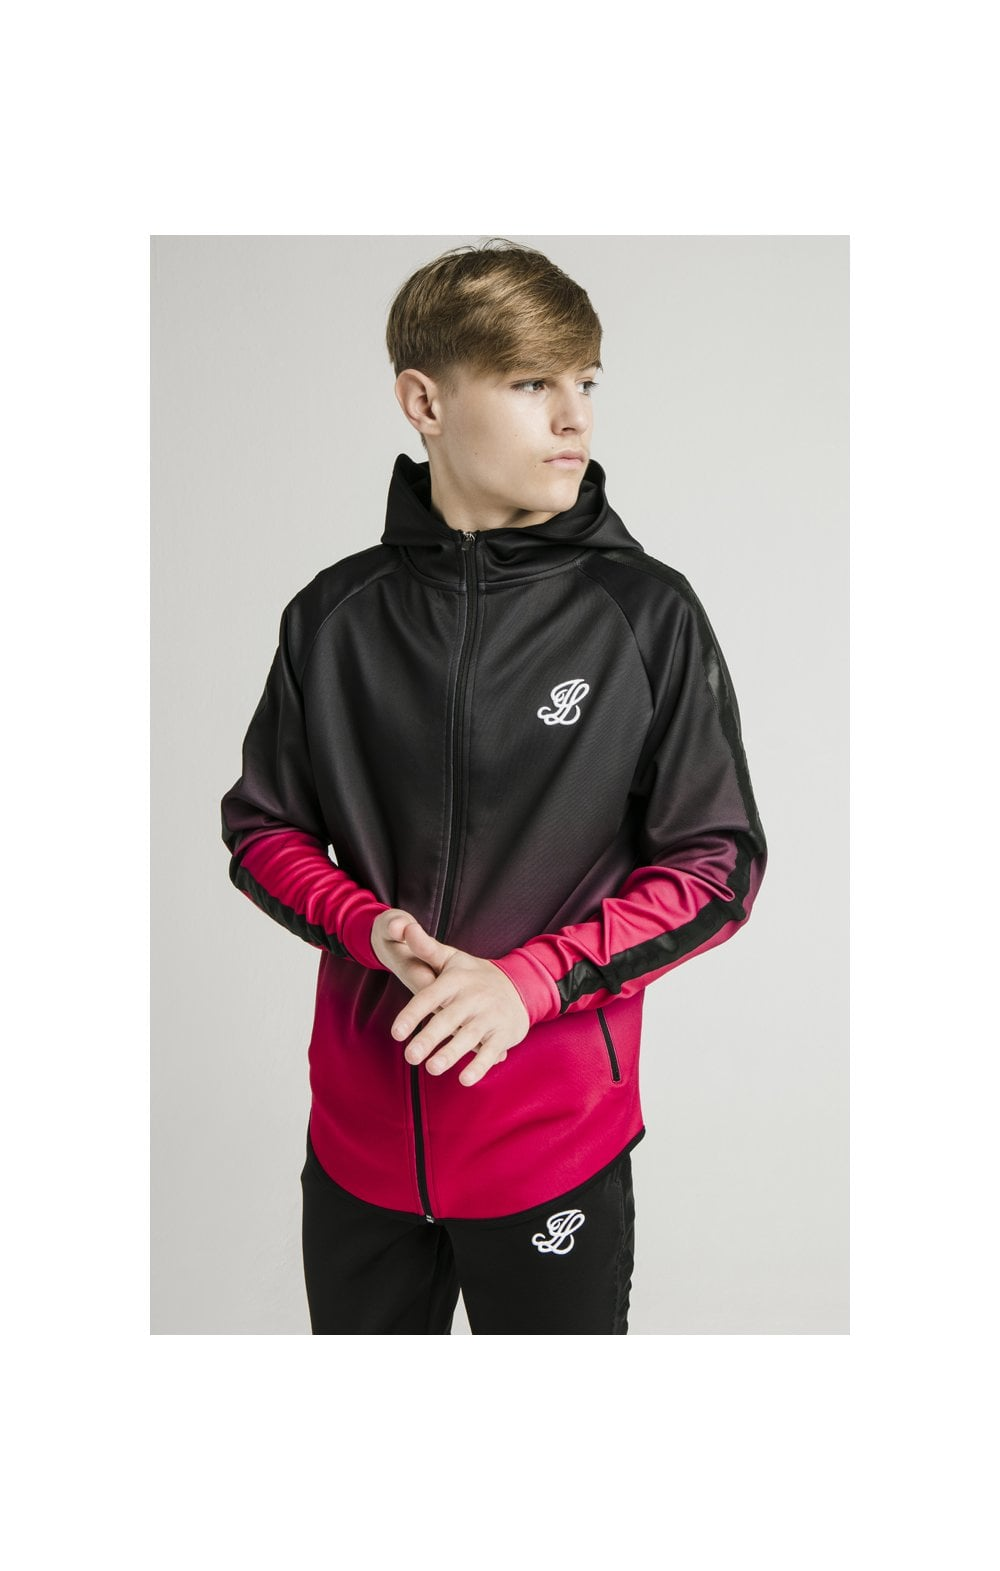 Load image into Gallery viewer, Illusive London Athlete Zip Through Fade Hoodie - Black & Pink (2)